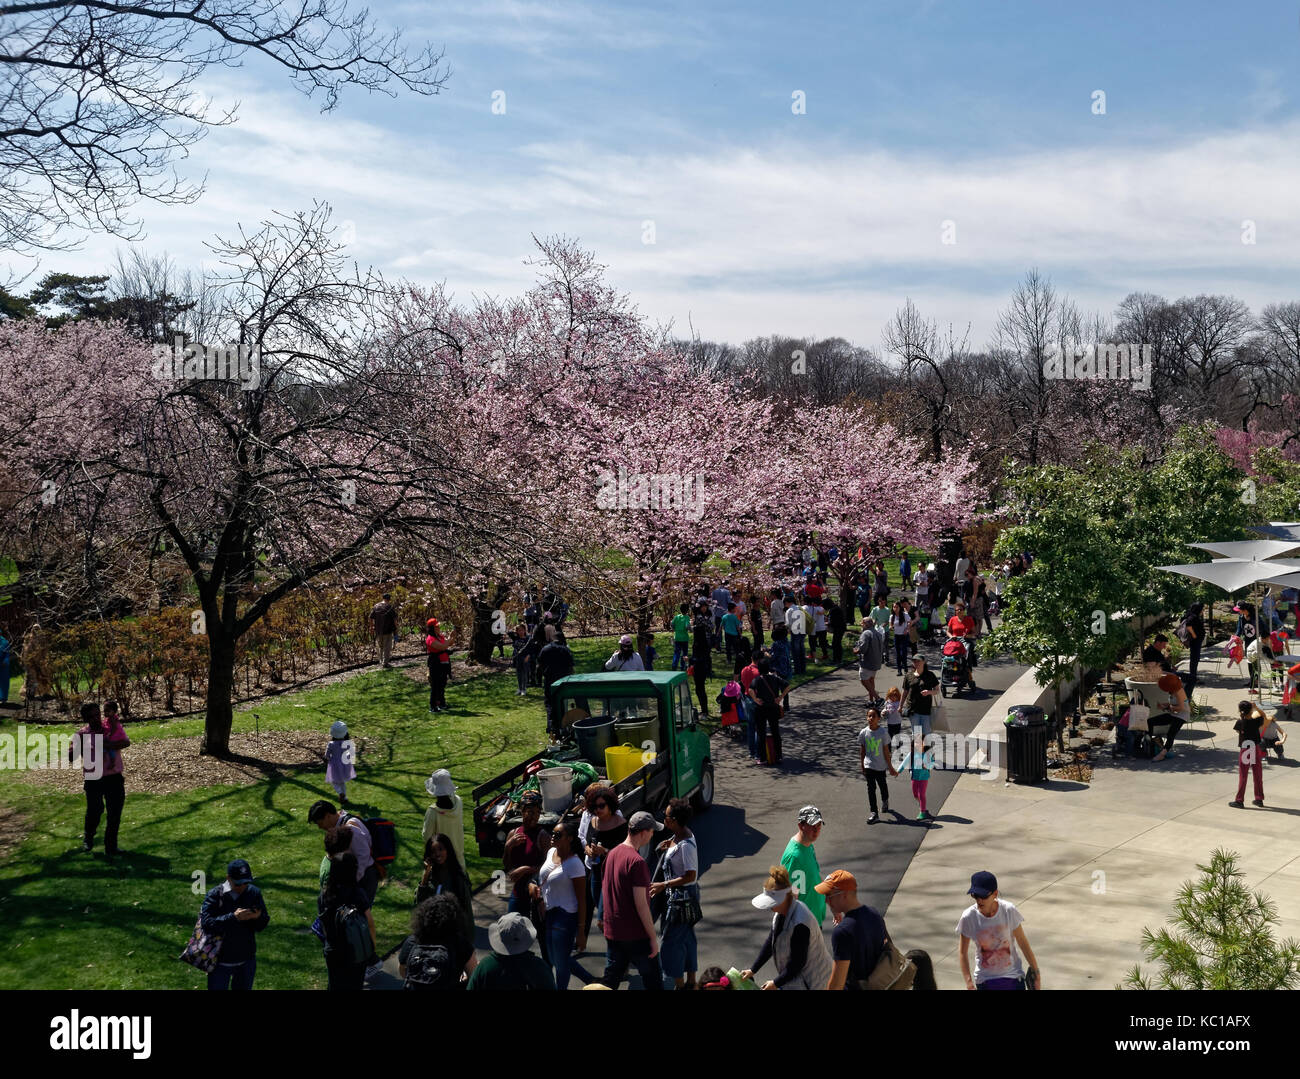 Visitors and tourists walking through the Brooklyn Botanic gardens enjoying the Spring cherry blossom trees bloom. - Stock Image